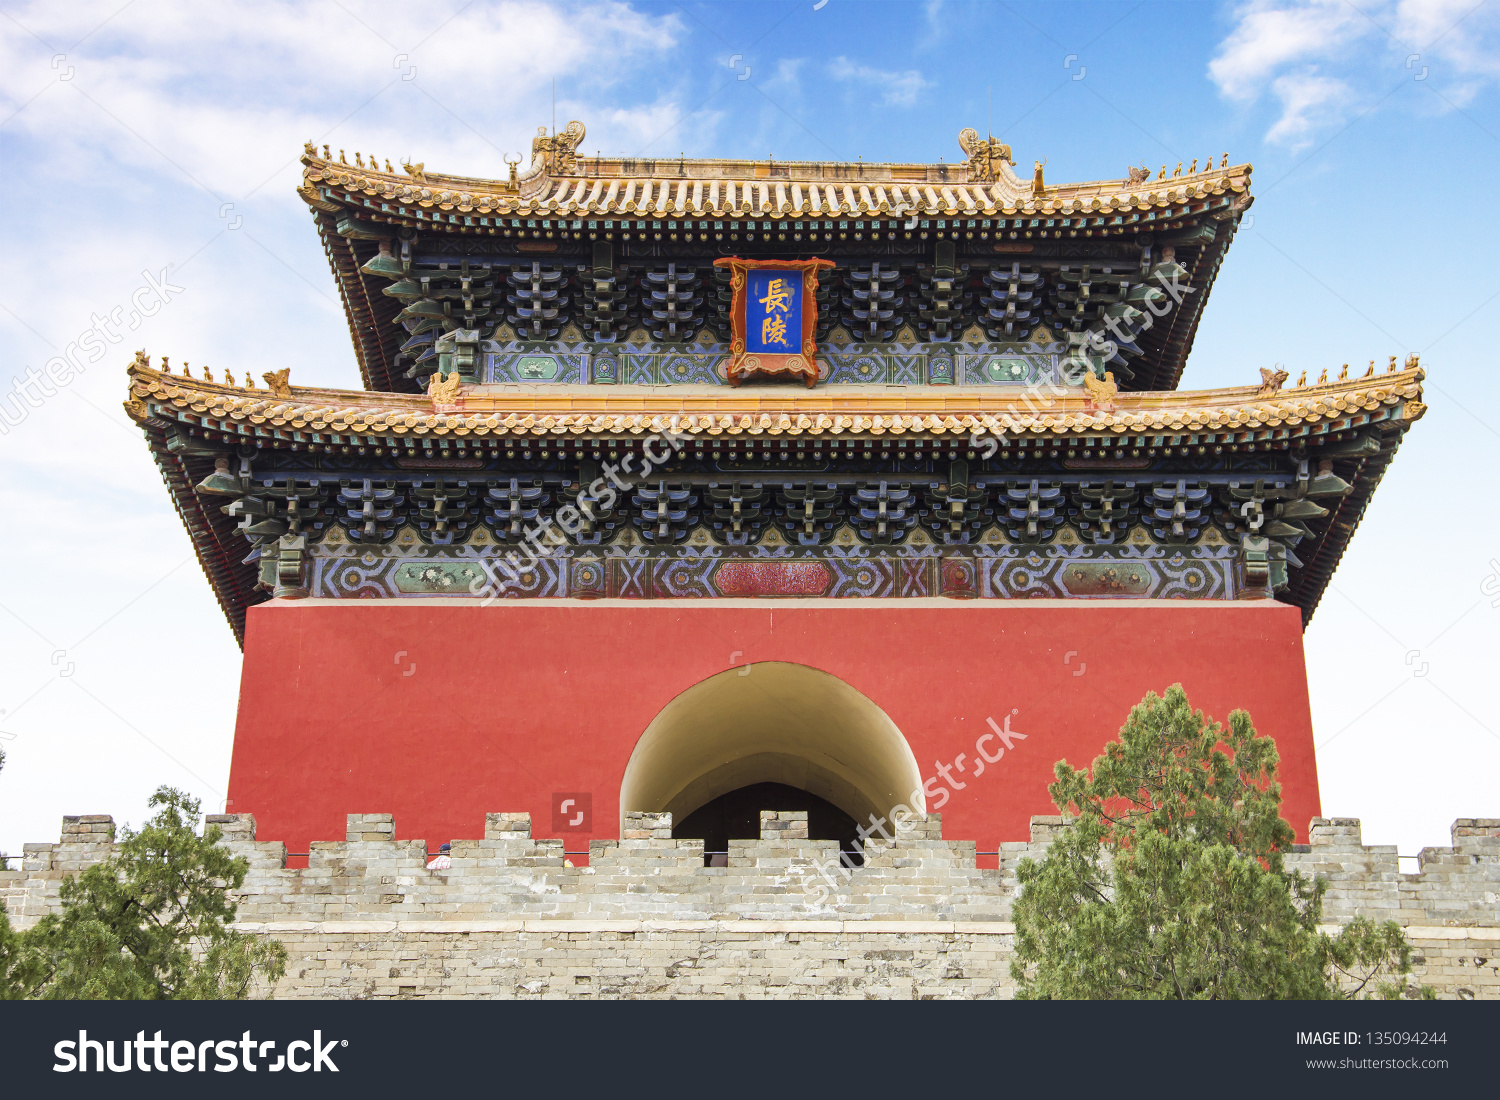 The Minglou (Soul Tower) In The Changling Tomb, Beijing, China.